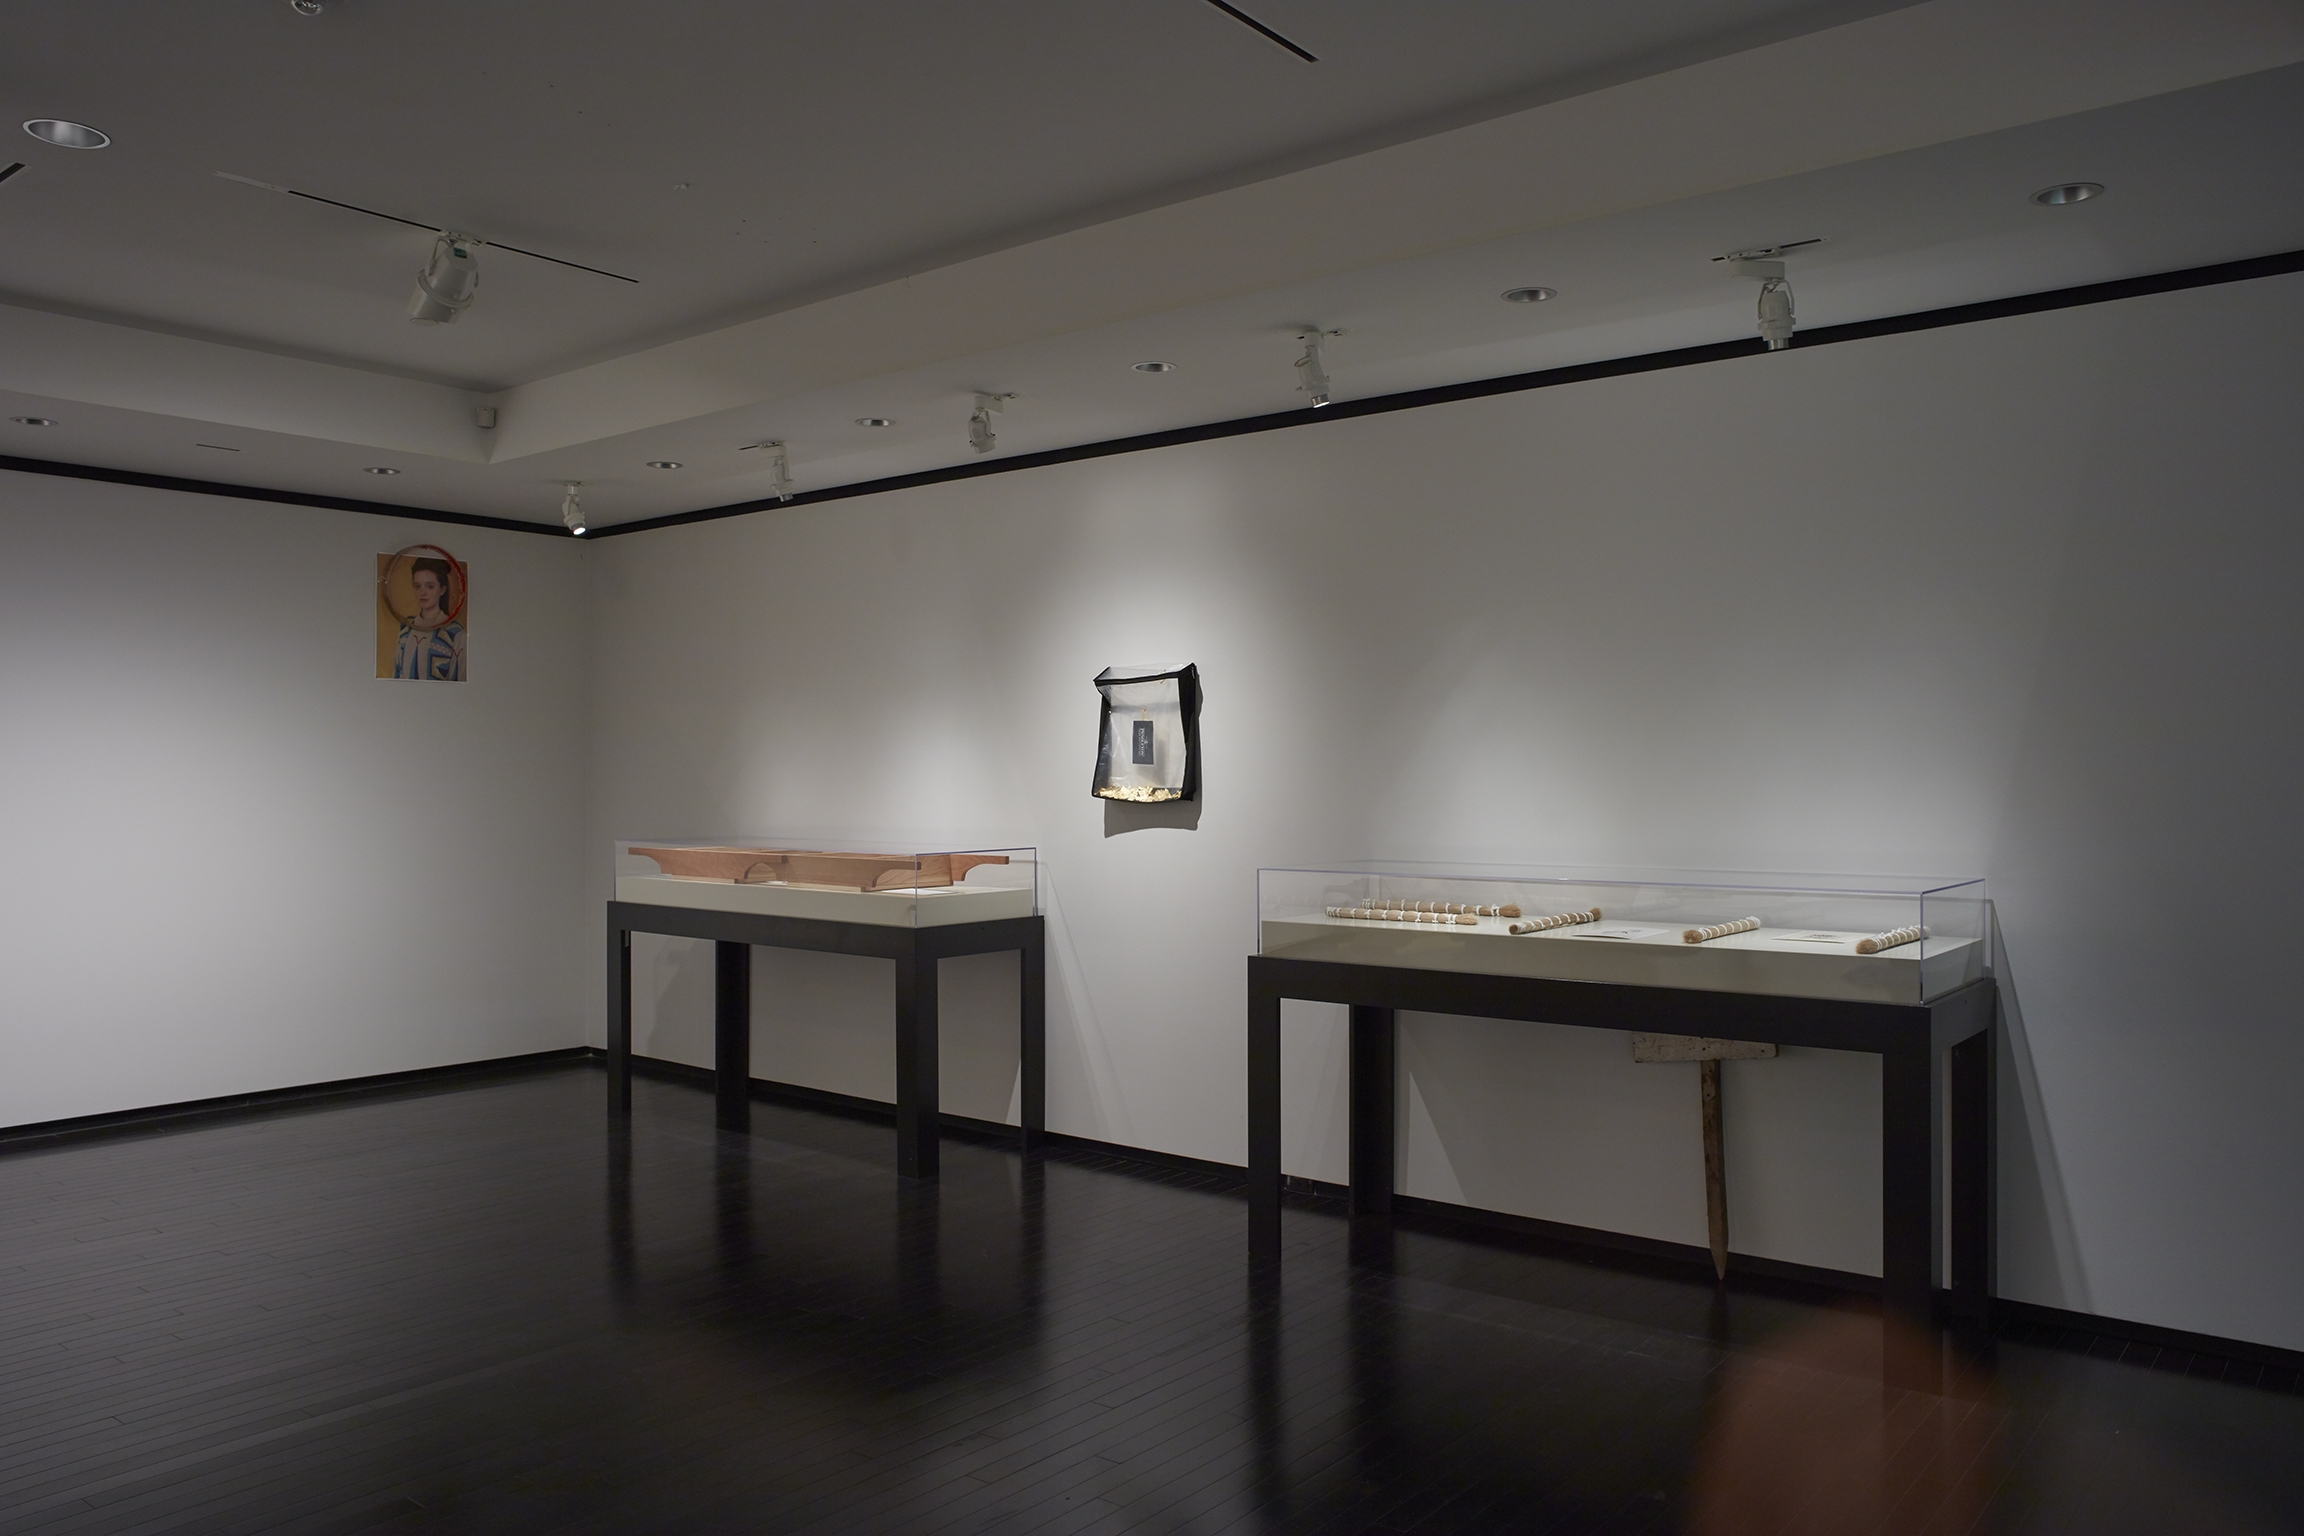 Tanya Lukin Linklater, Horse Hair Question 2, 2016, mixed media, dimensions variable. Installation view, A Parallel Excavation, Art Gallery of Alberta, Edmonton, Canada, 2016 by